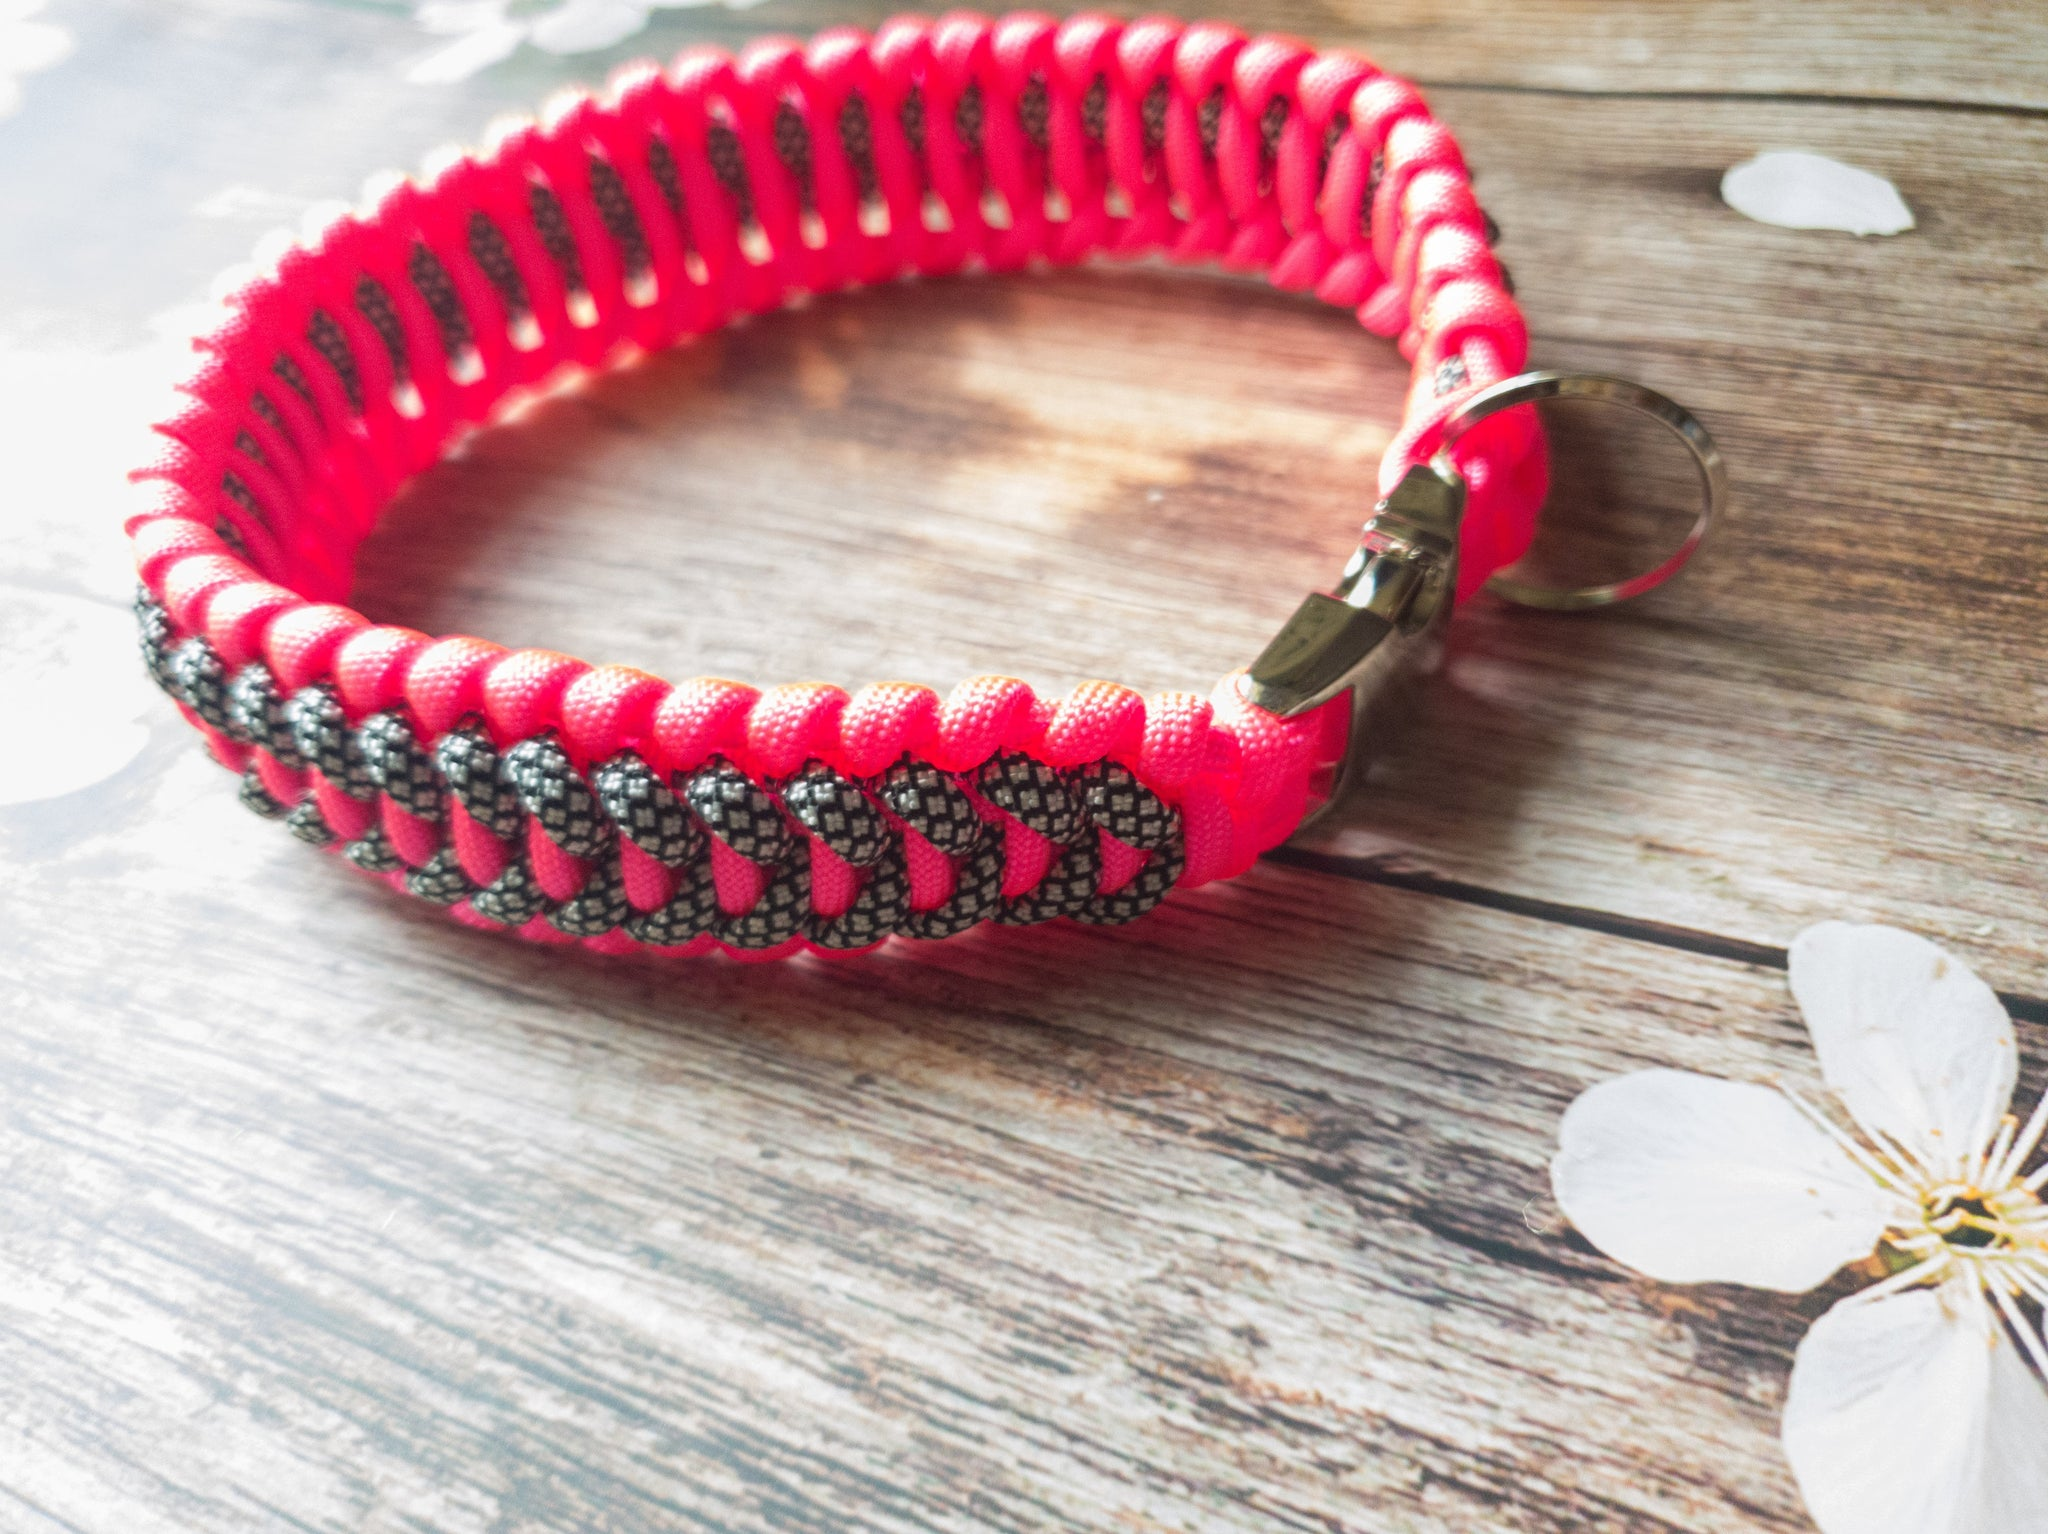 Trilobite Dog Collar Neon Pink & Spotted Black